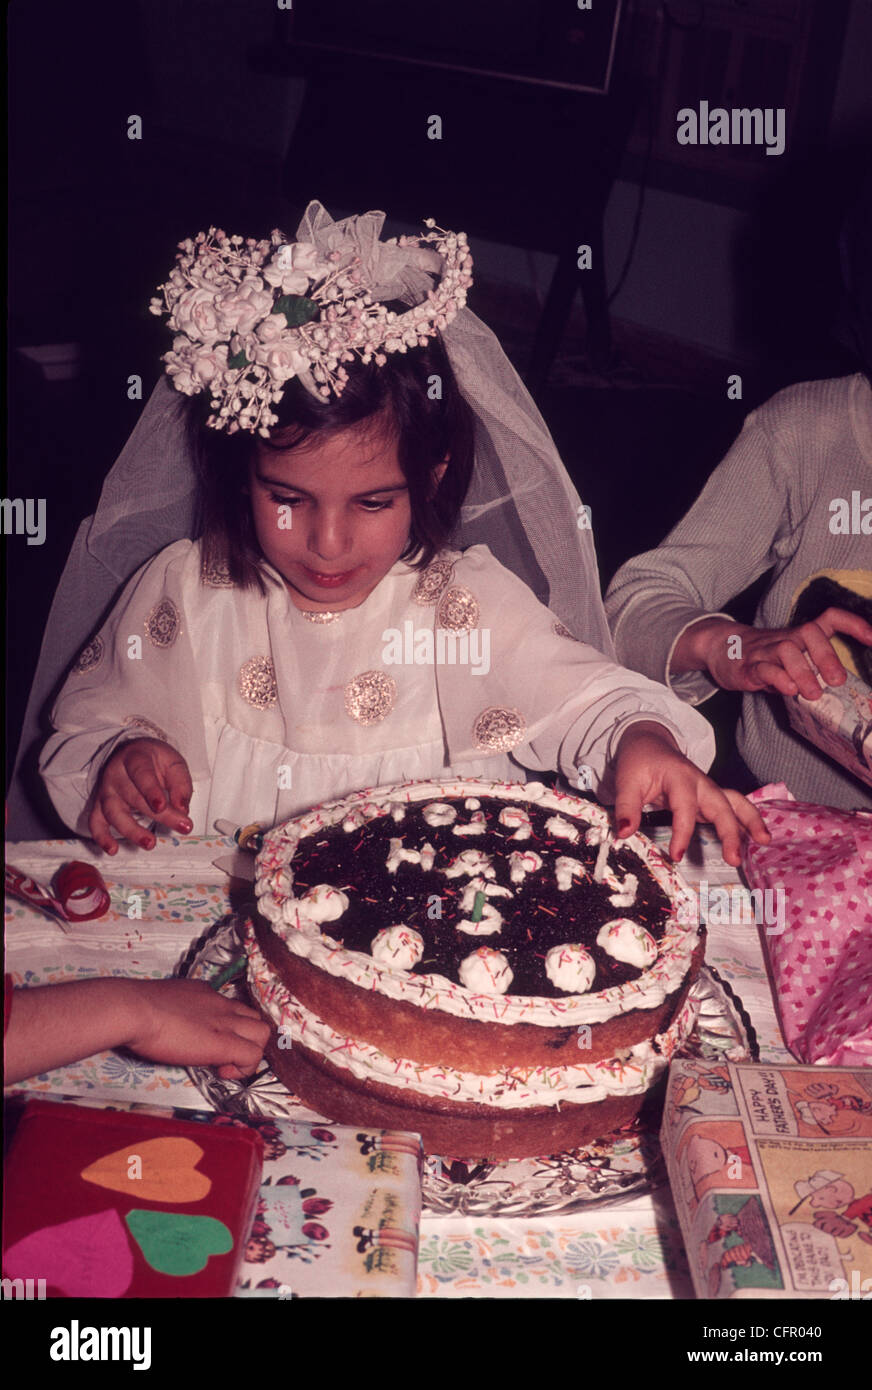 ARAK, IRAN:  Young Iranian girl dressed as a bride, celebrates her fifth birthday by blowing out candles on her - Stock Image